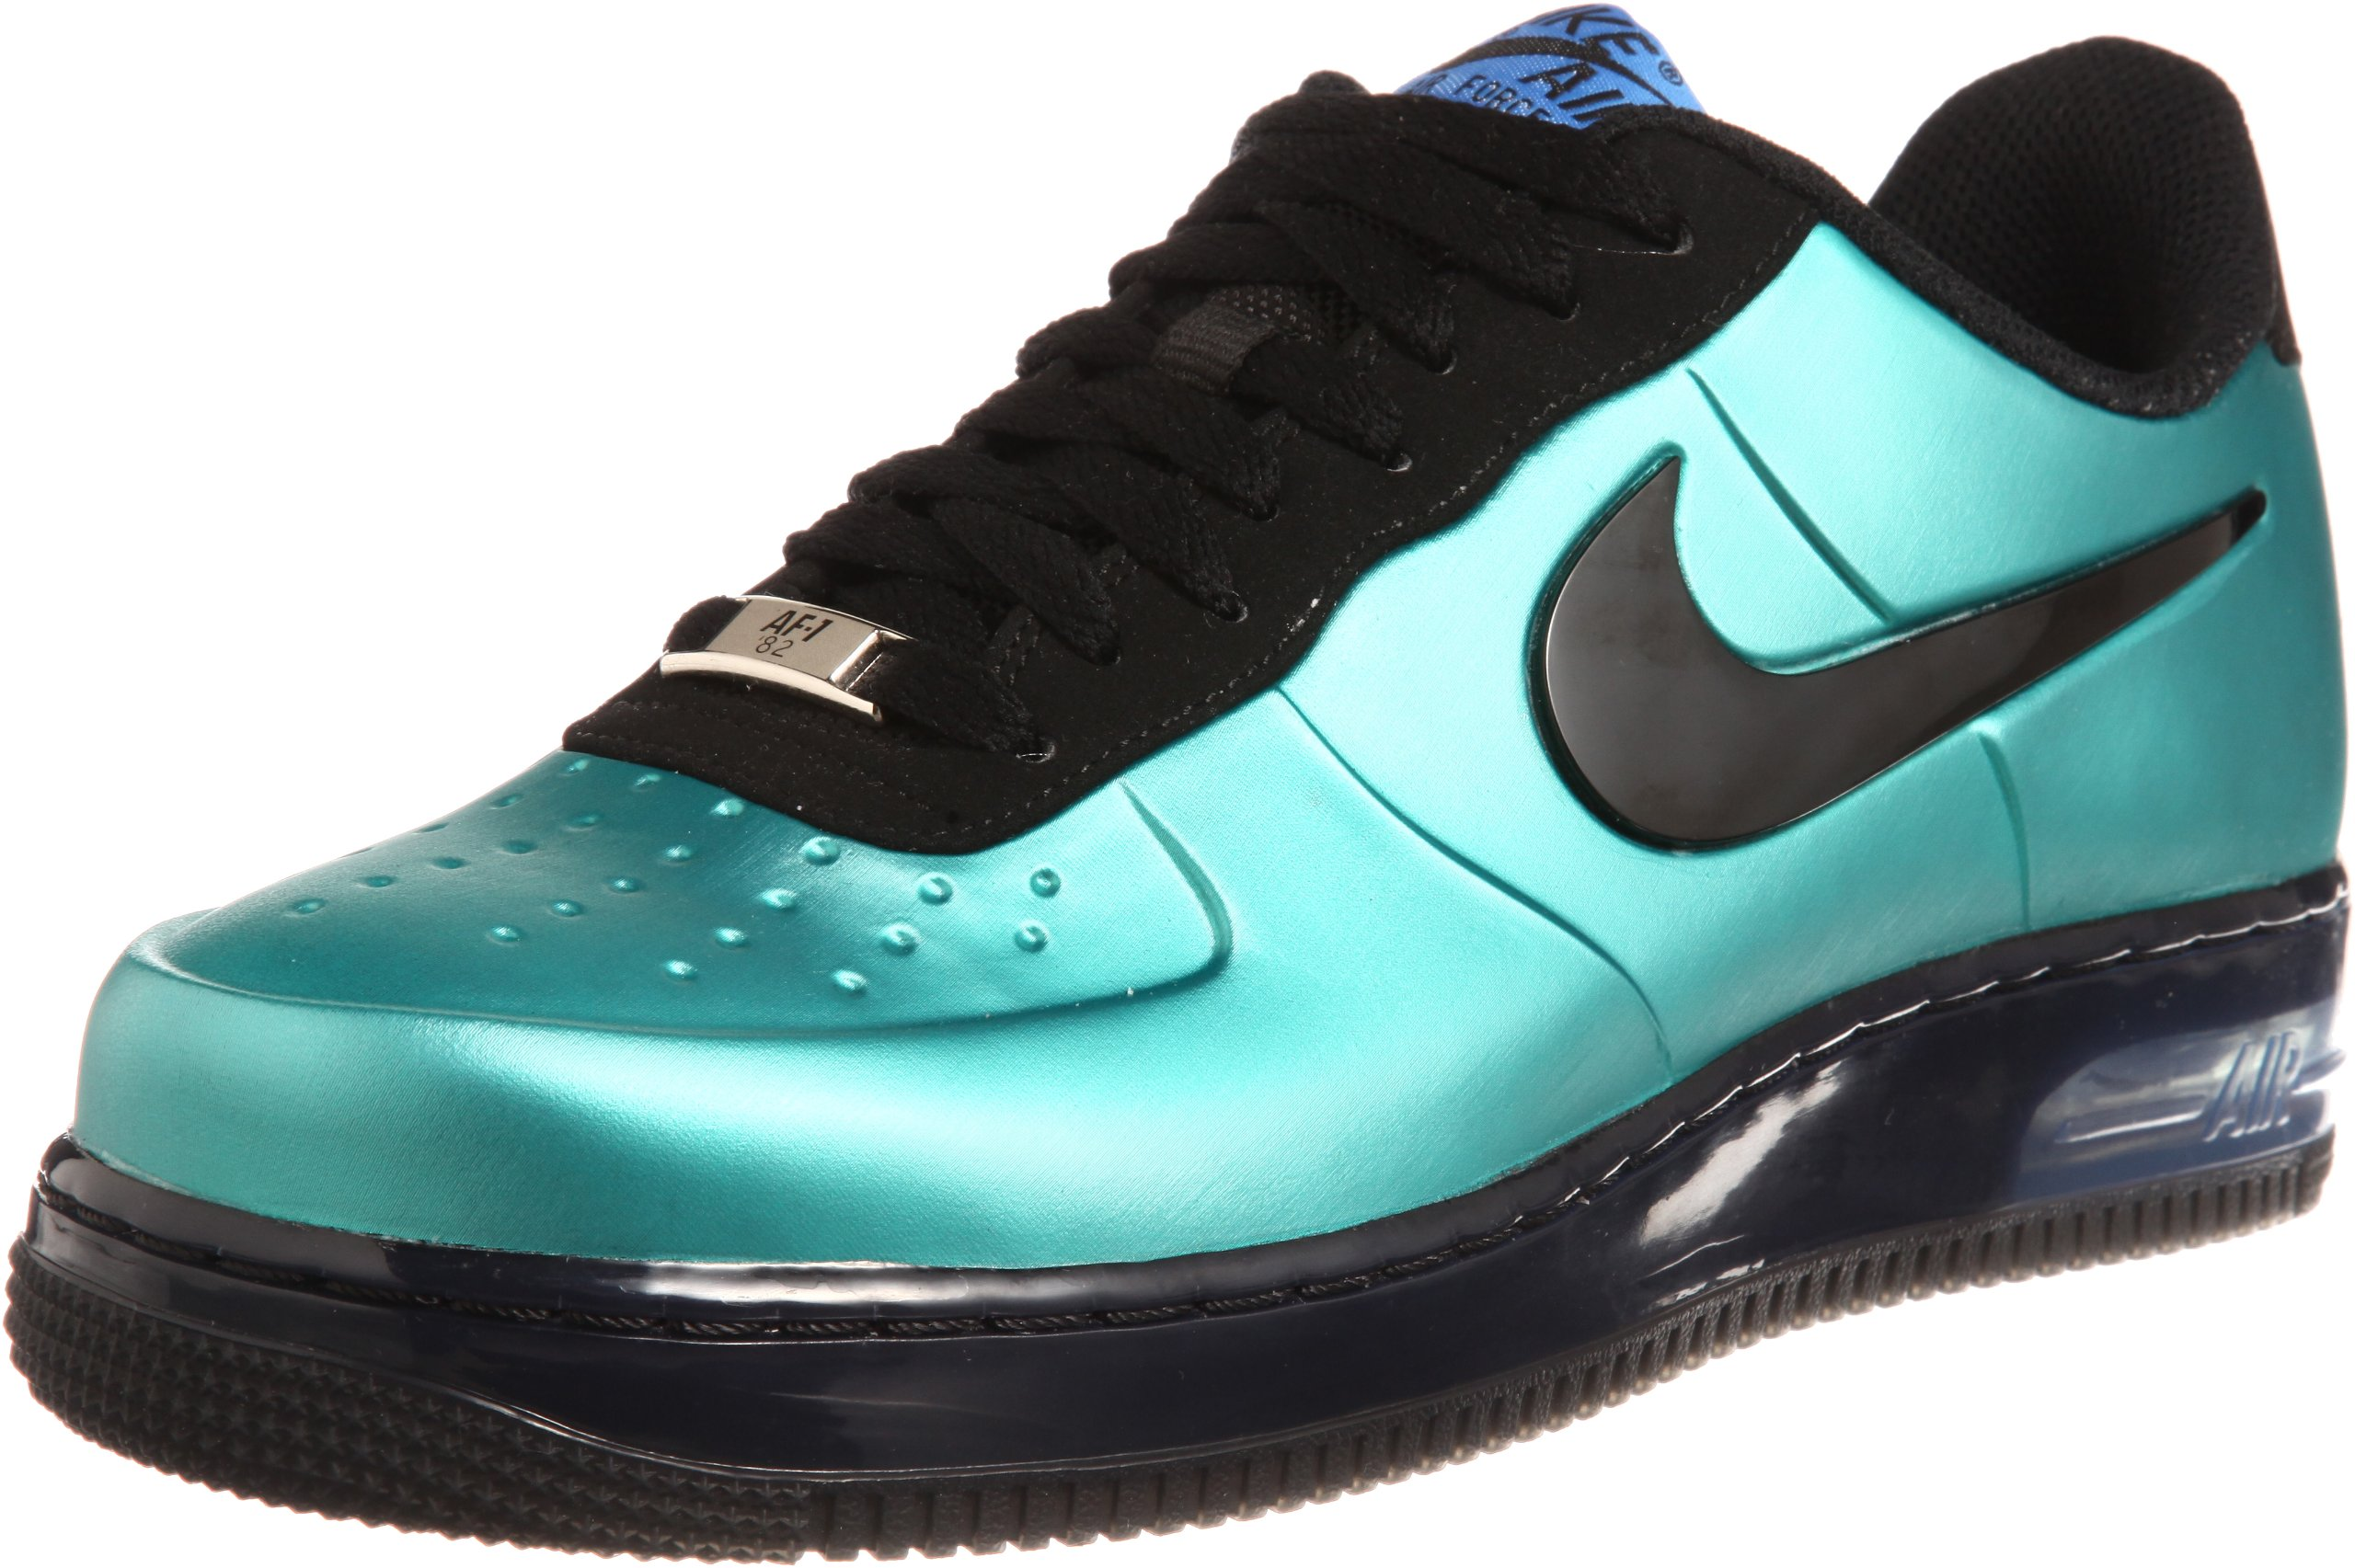 Nike Men's Air Force 1 Foamposite Pro Low, Foamposite-NEW GREEN/BLACK